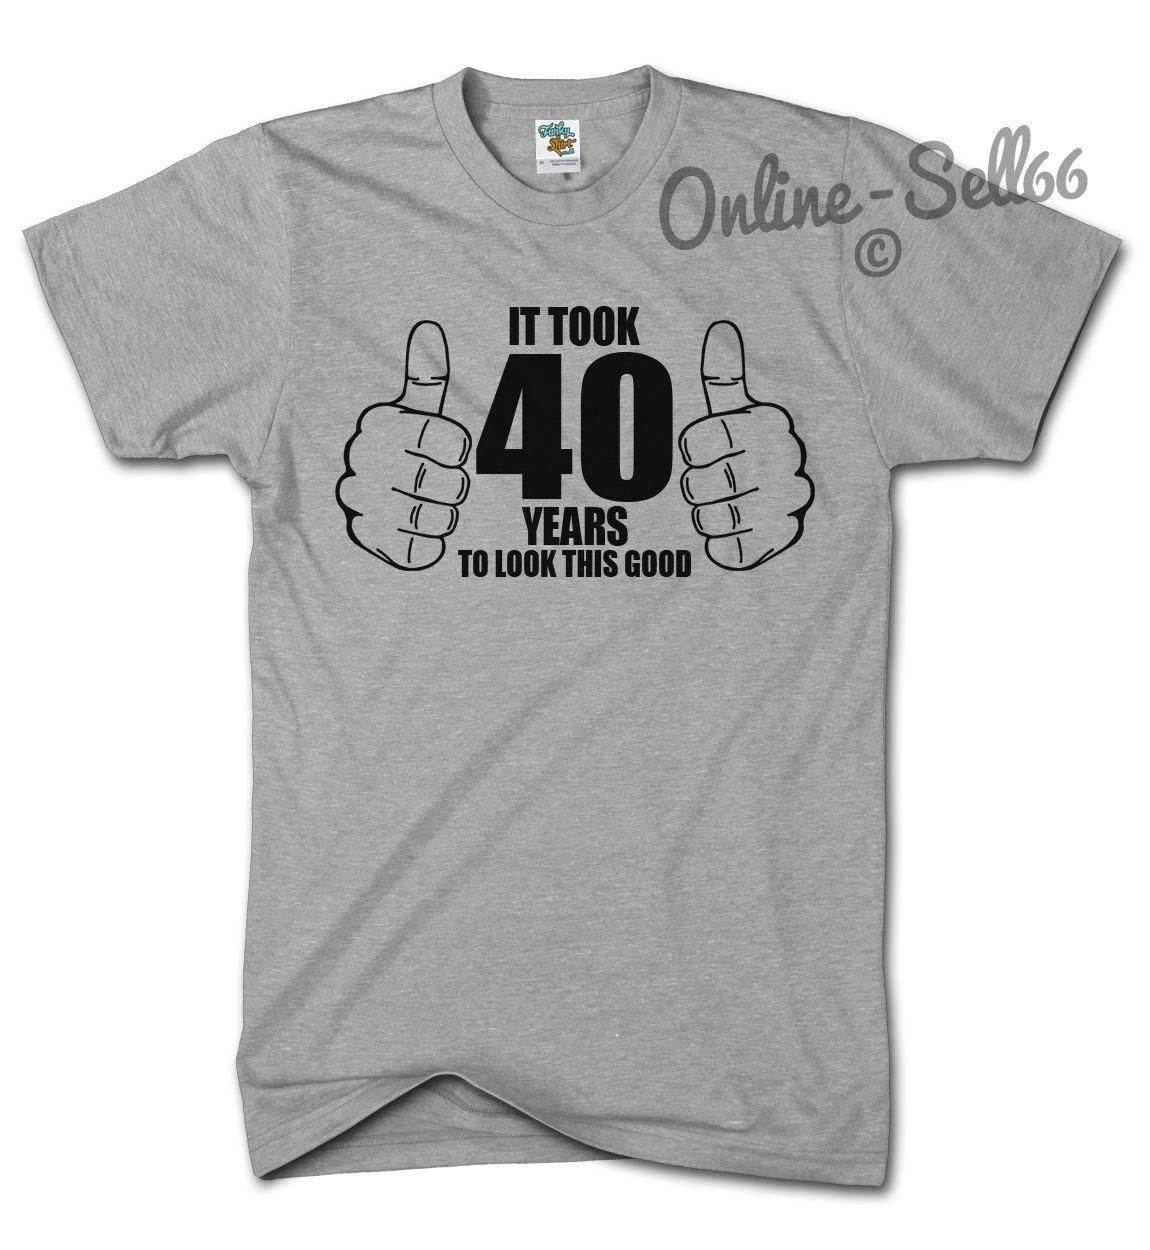 68fc35b6 It Took 40 Years To Look This Good Funny Tshirt Novelty Birthday 40th Top  Gift Funny Tops Tee New Unisex Funnytops Best Tee Shirts T Shirts Cheap  From ...